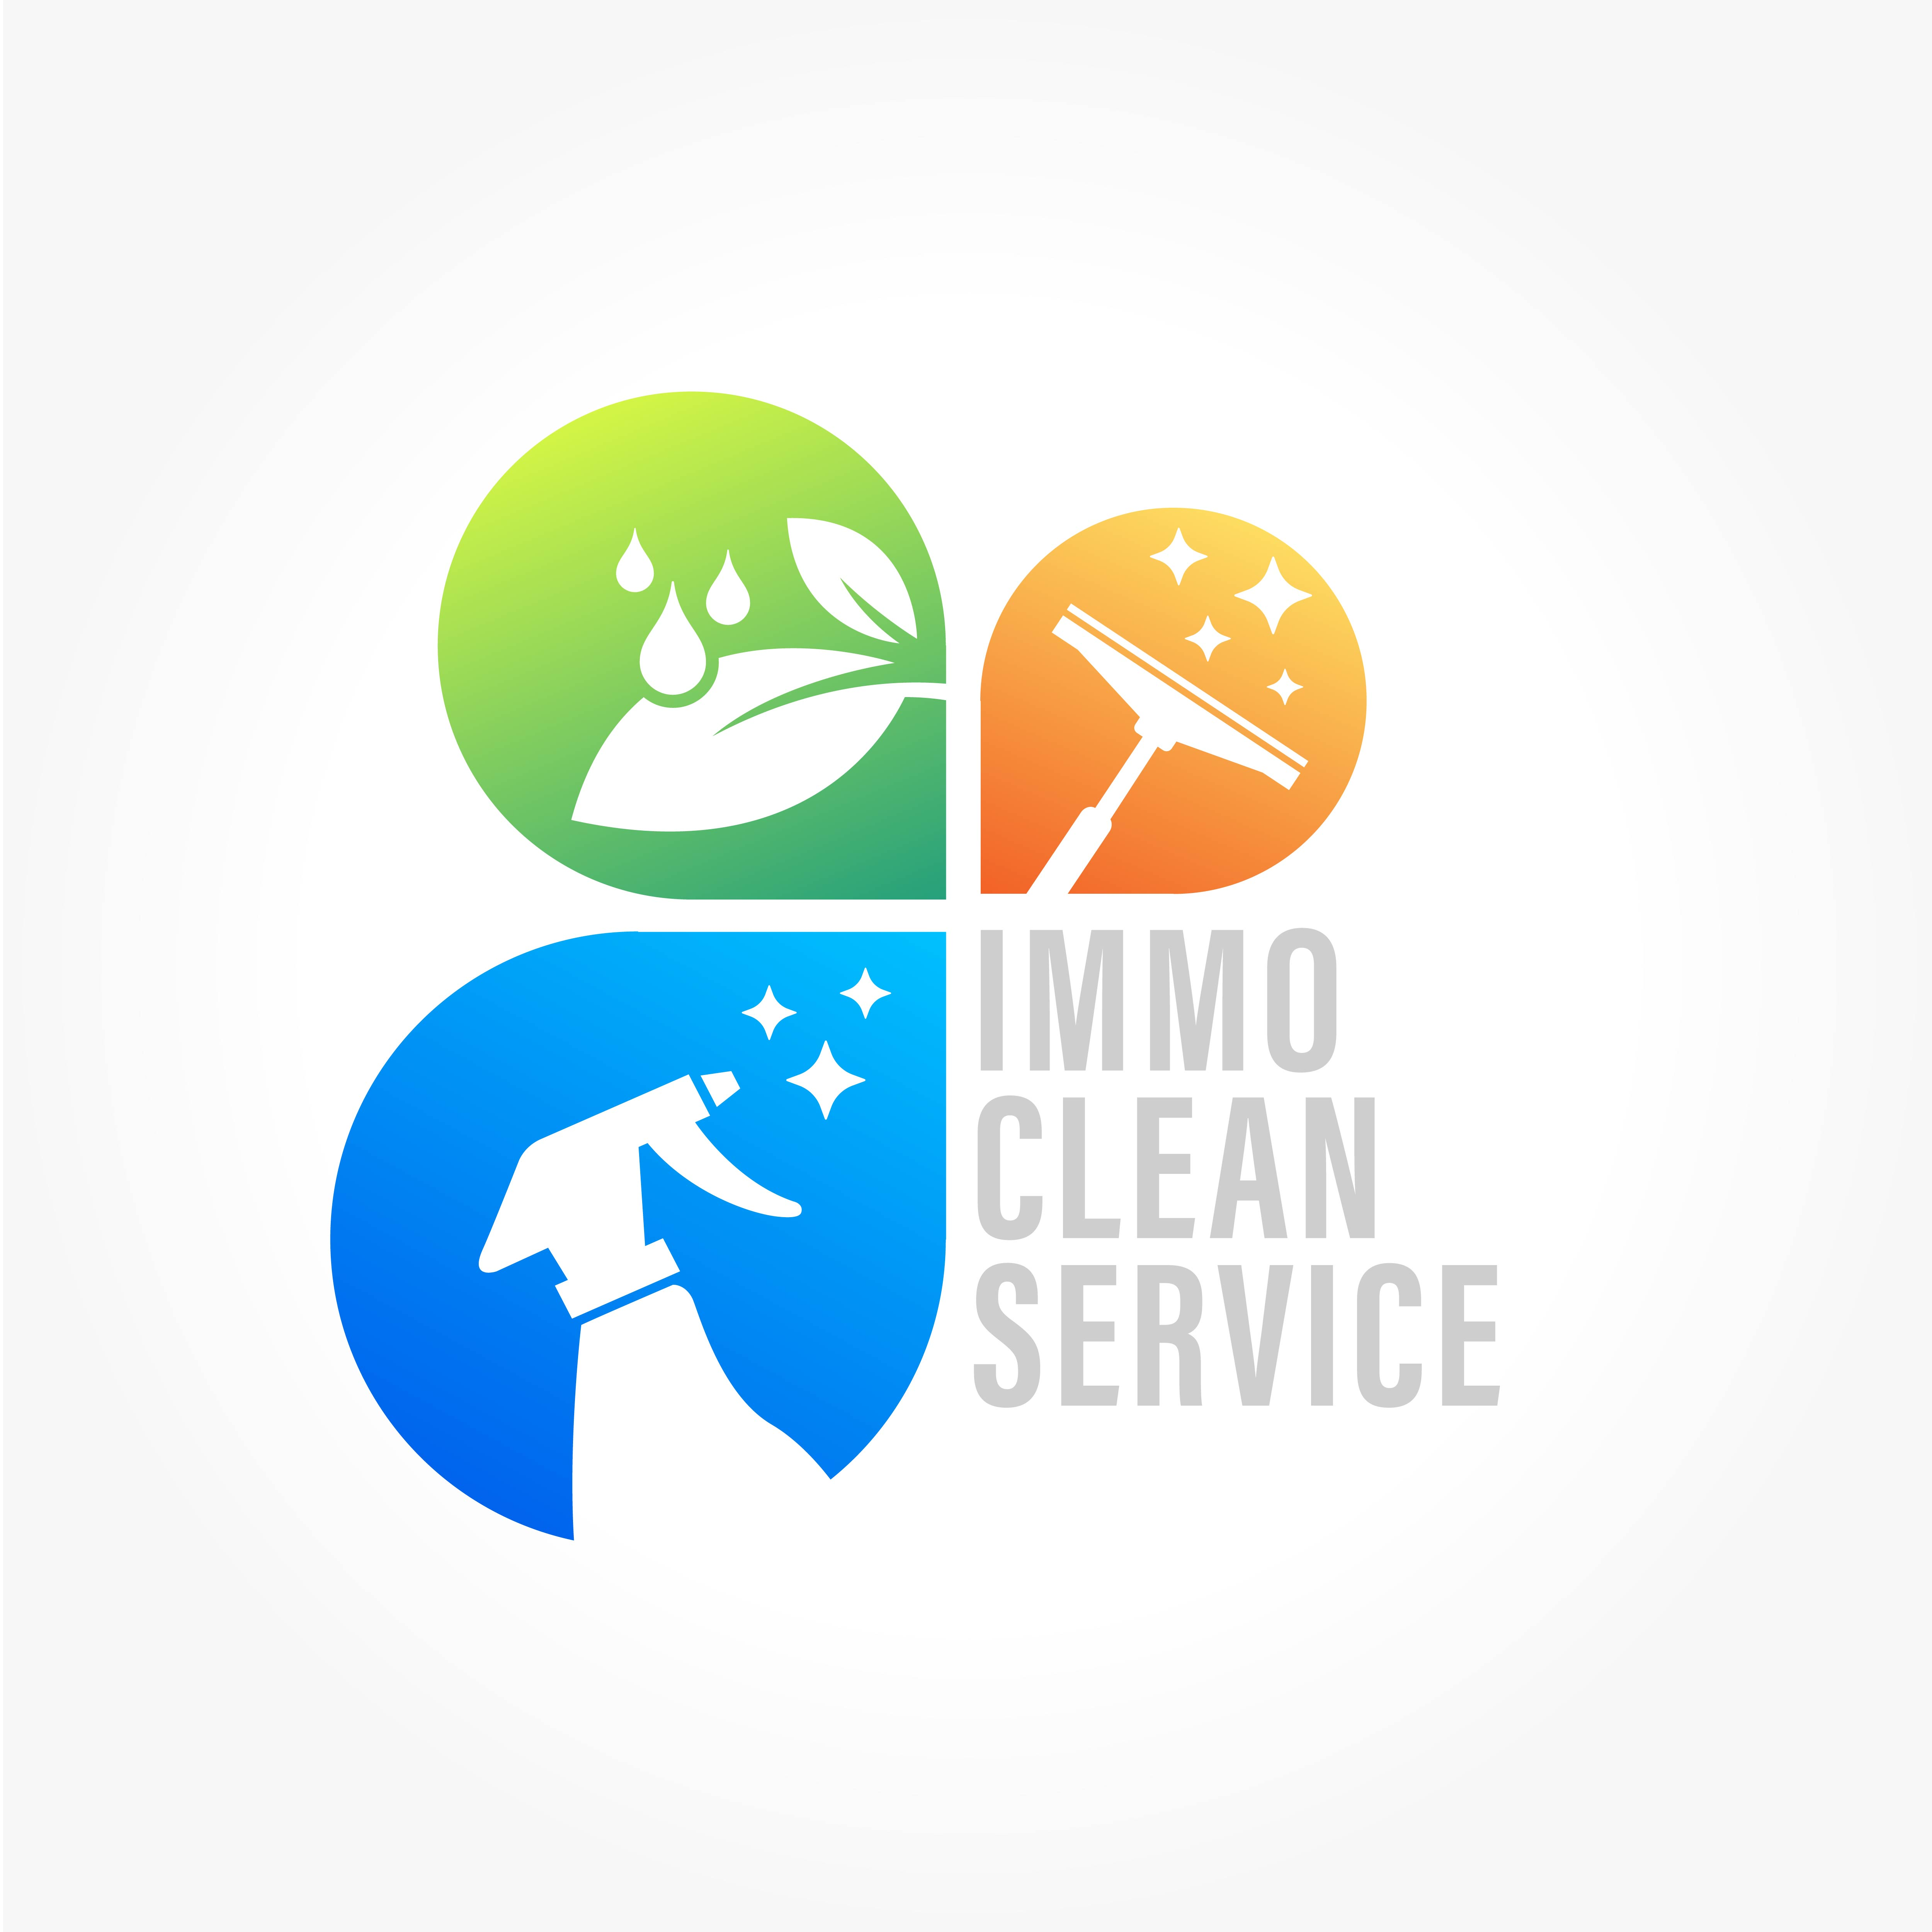 Immo clean service logo-01